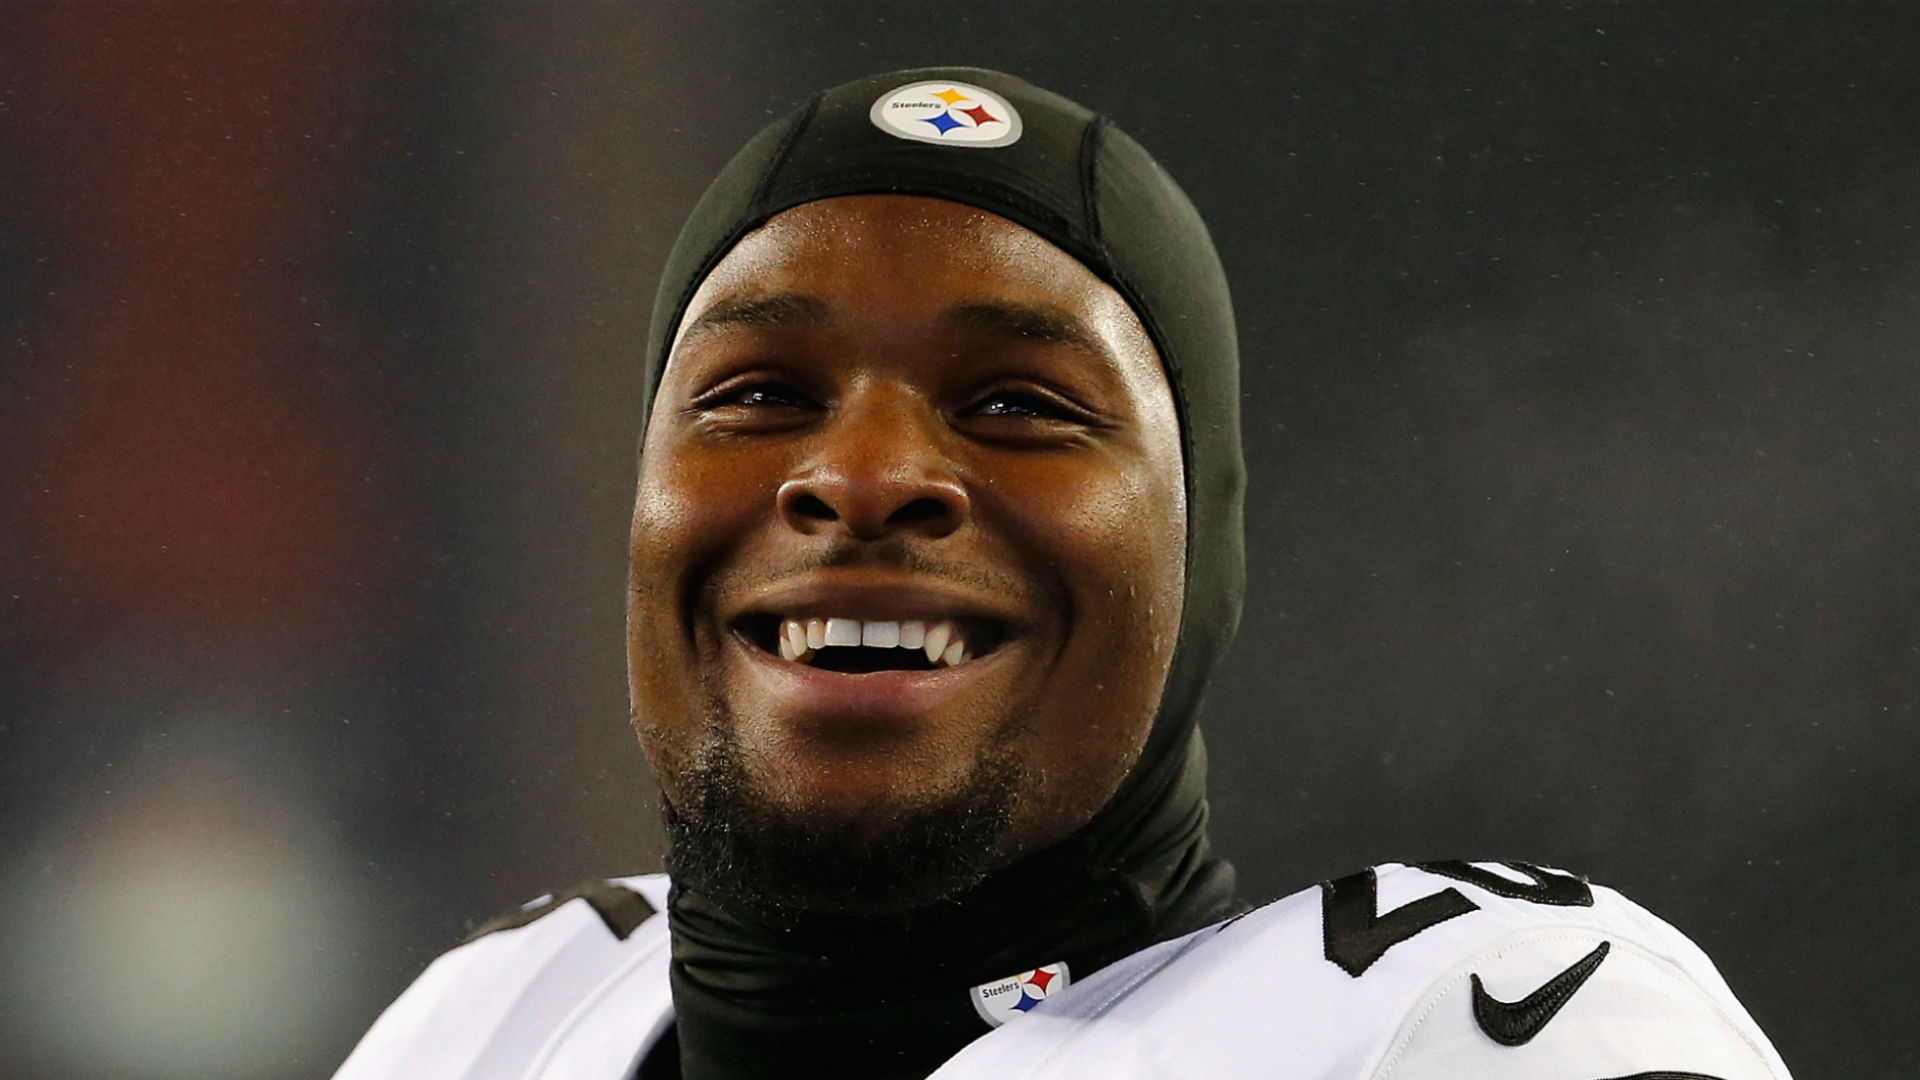 Jets' Le'Veon Bell makes appearance at mandatory minicamp